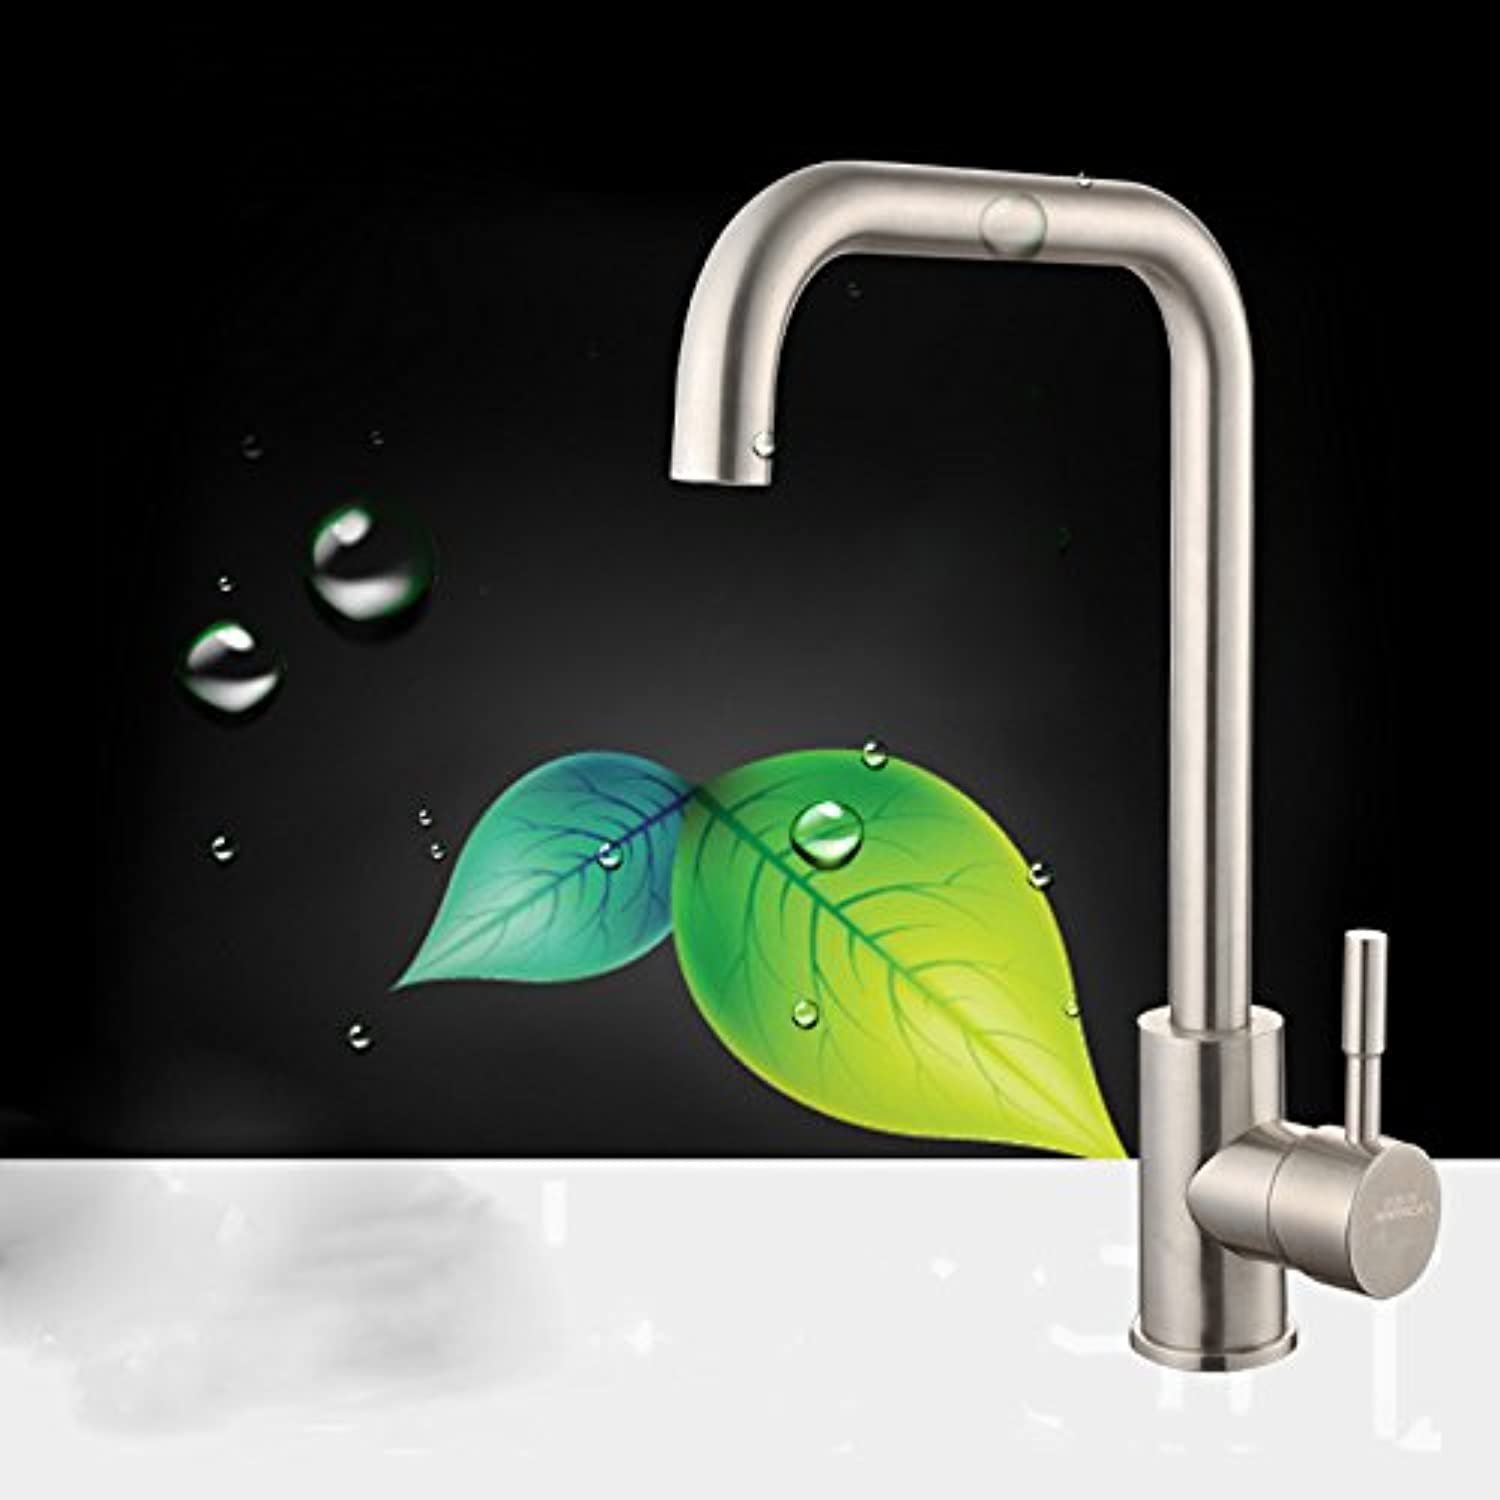 Commercial Single Lever Pull Down Kitchen Sink Faucet Brass Constructed Polished 0Rr Kitchen Faucet_Hot and Cold Kitchen Faucet Hot and Cold Sink Faucet Sink Faucet